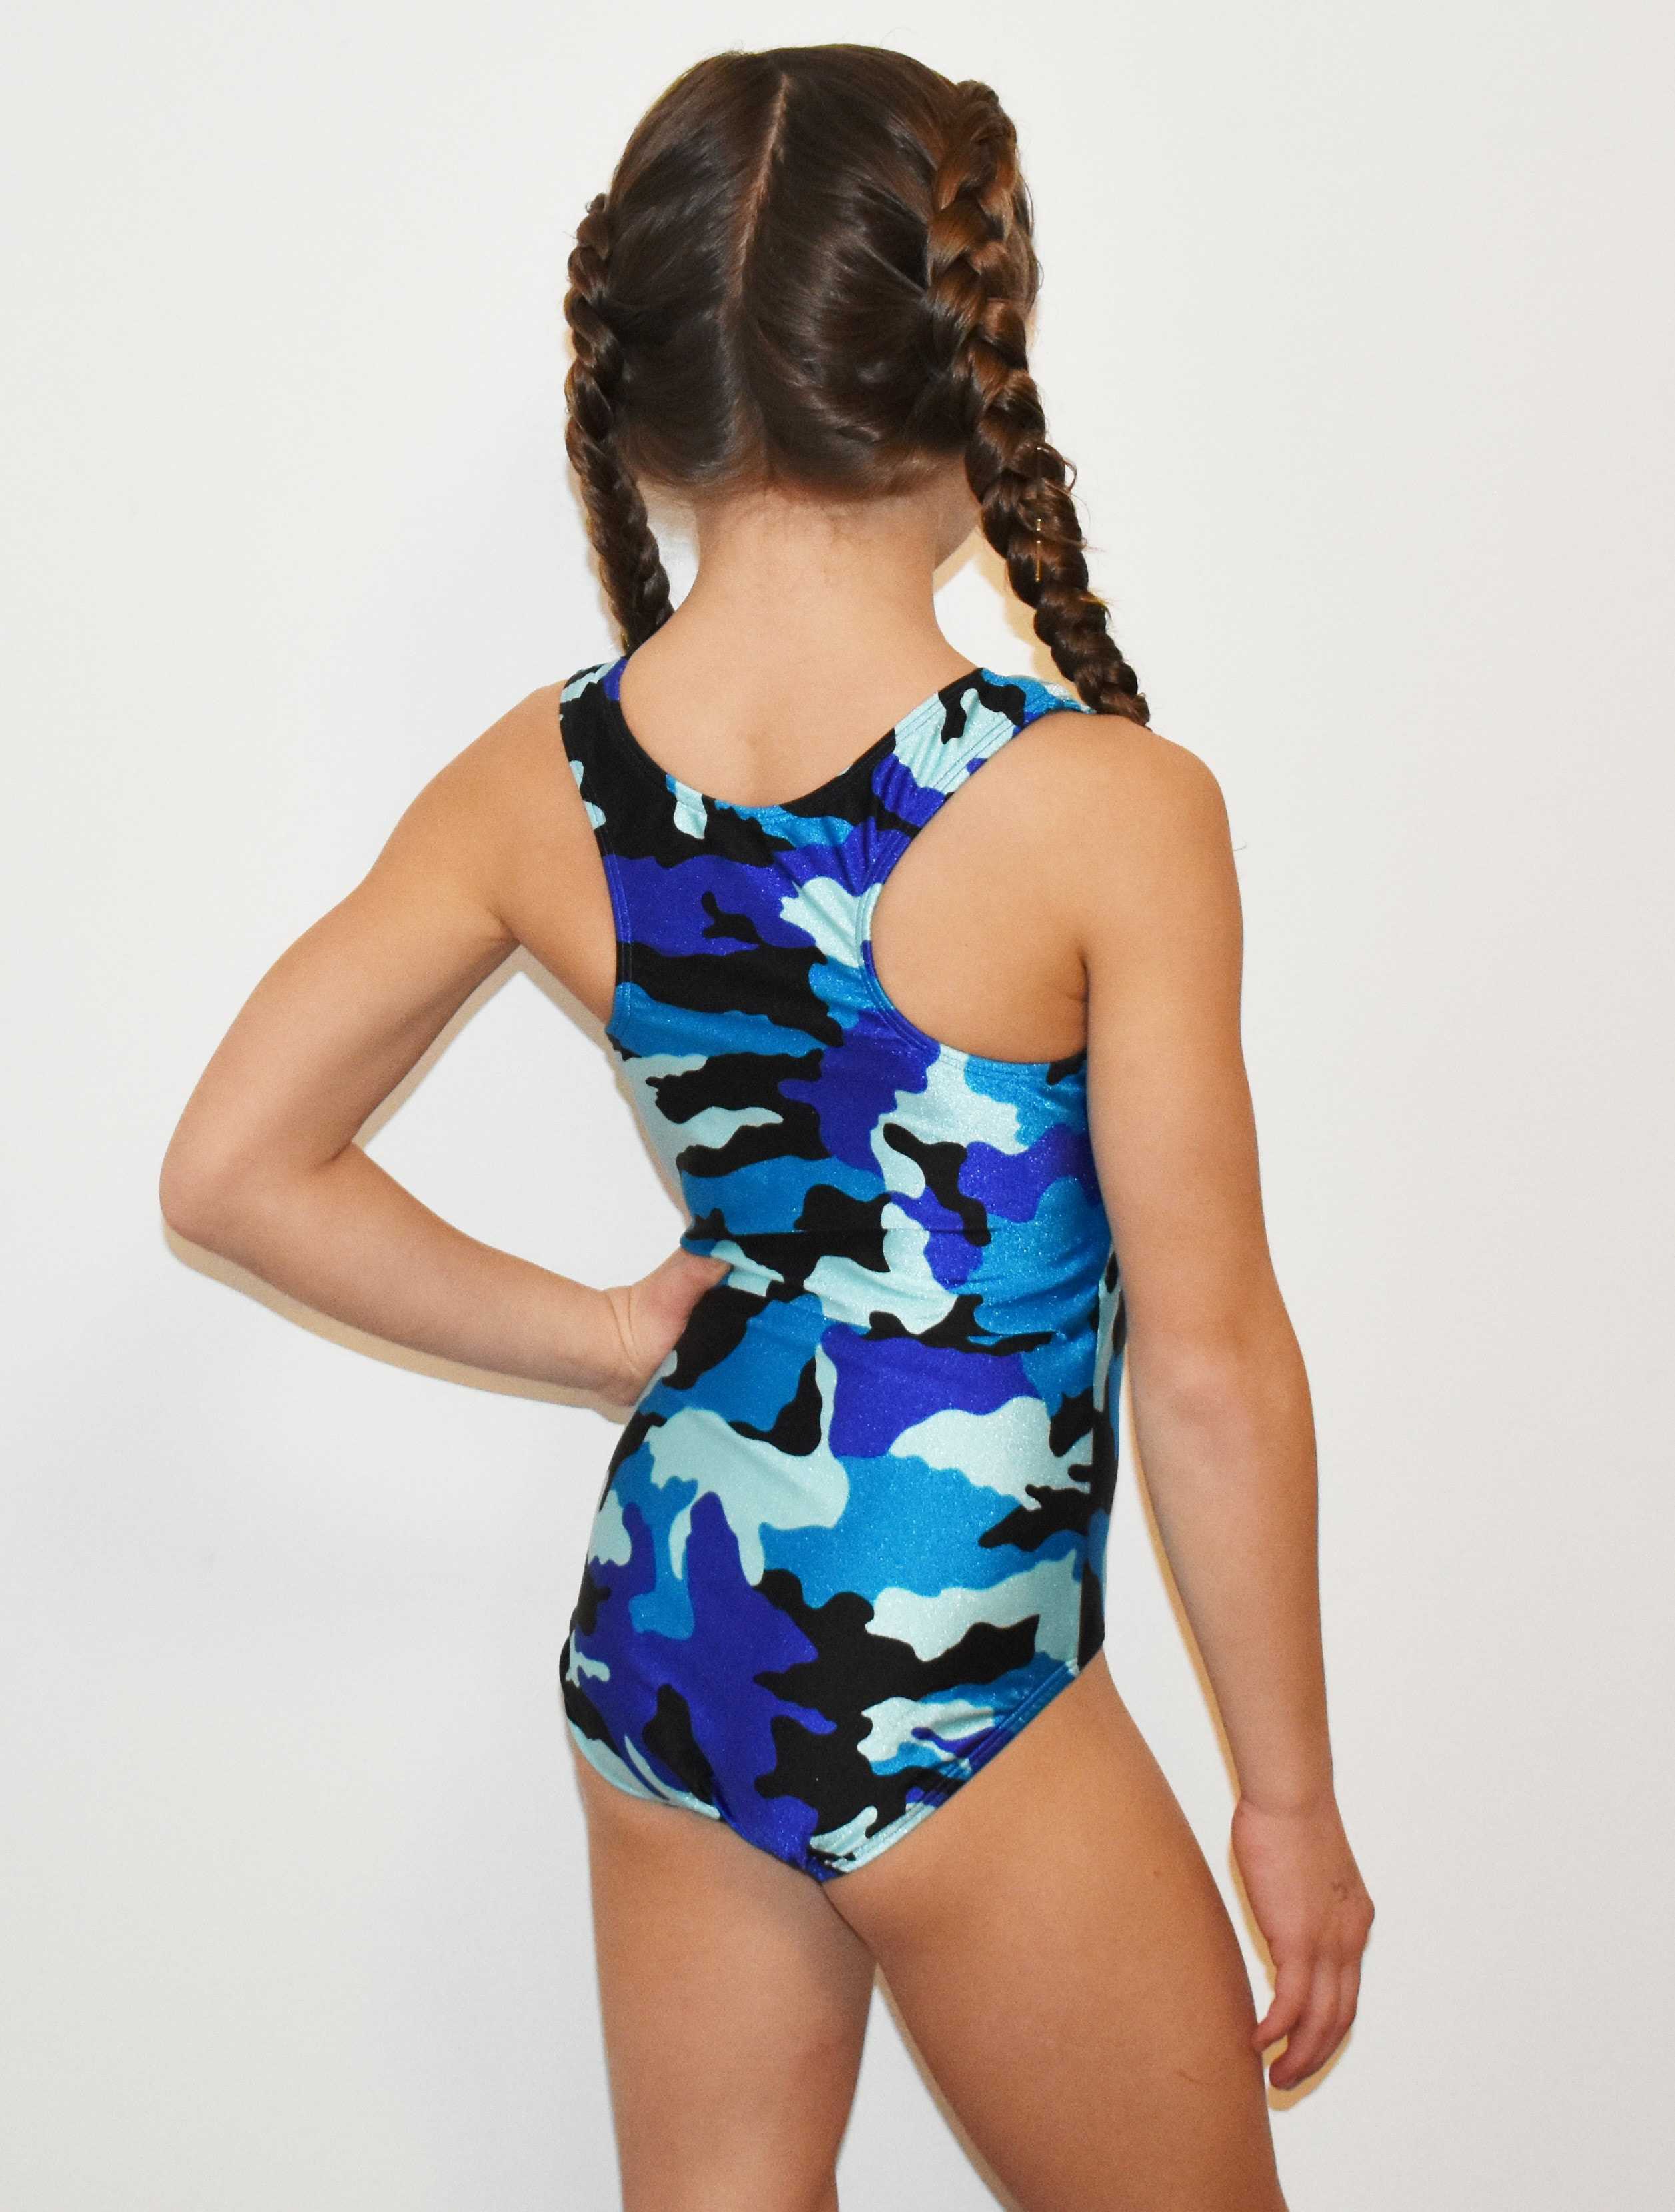 48b04fd42 BLUE CAMO gymnastics leotard RACER BACK